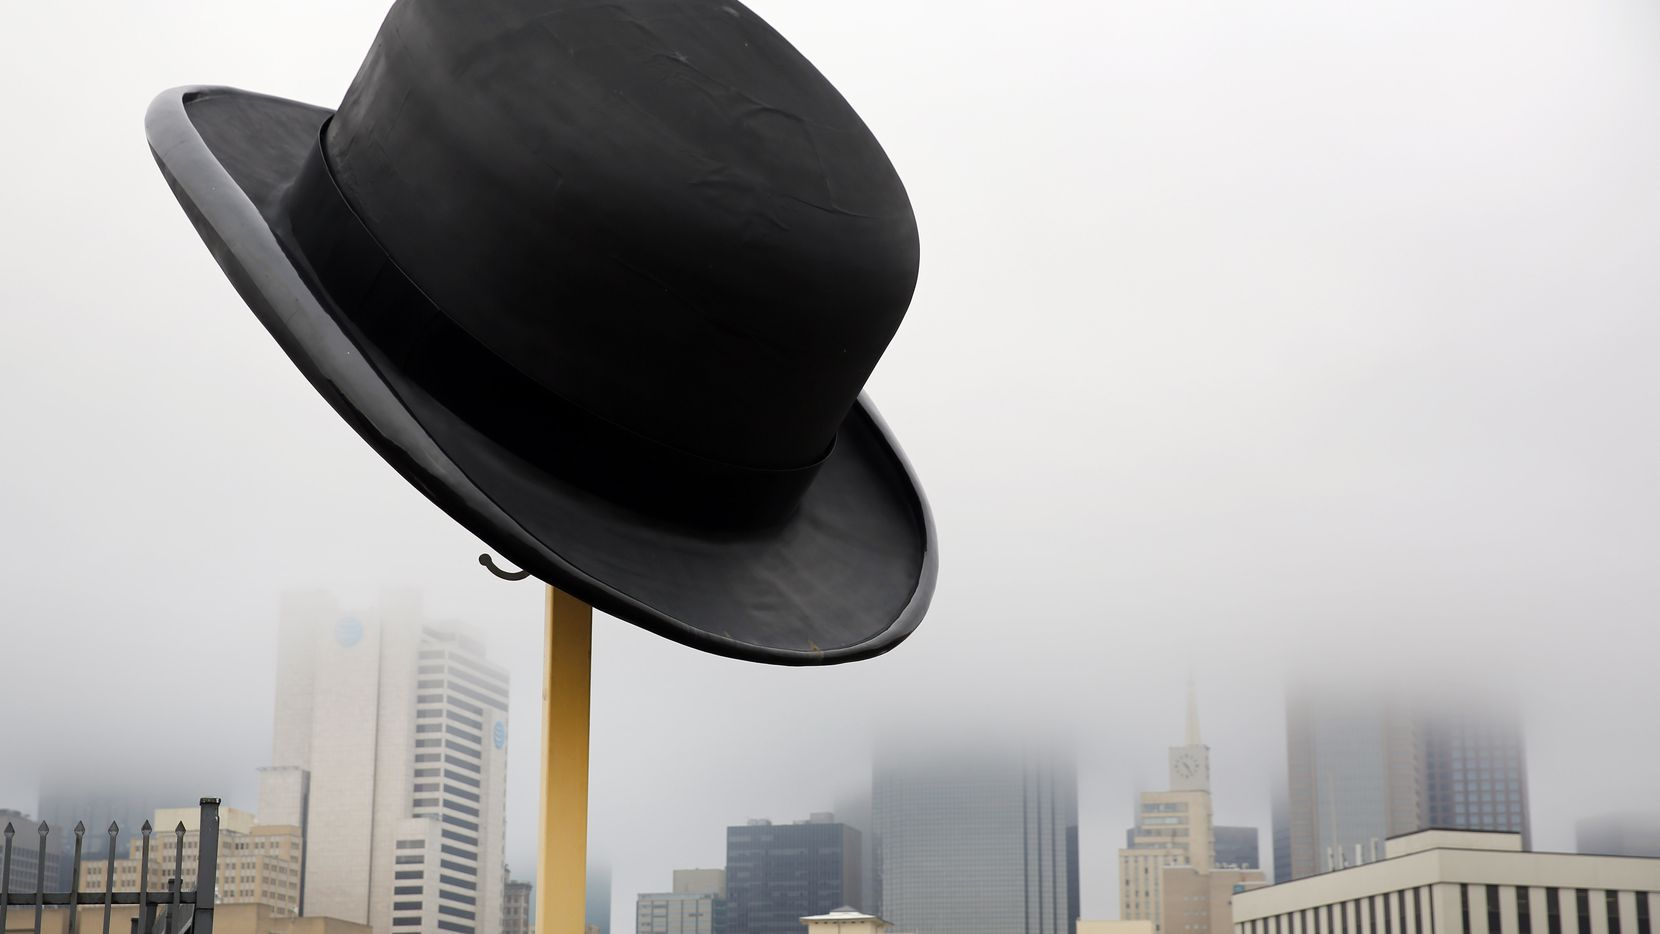 Downtown Dallas was shrouded by fog around a giant bowler hat sculpture by Keith Turman on Friday morning. Turman also created the 42-foot-tall, rolled-up umbrella in the Cedars neighborhood down the street on Akard. The National Weather service predicts more fog and drizzle Saturday and Sunday morning.